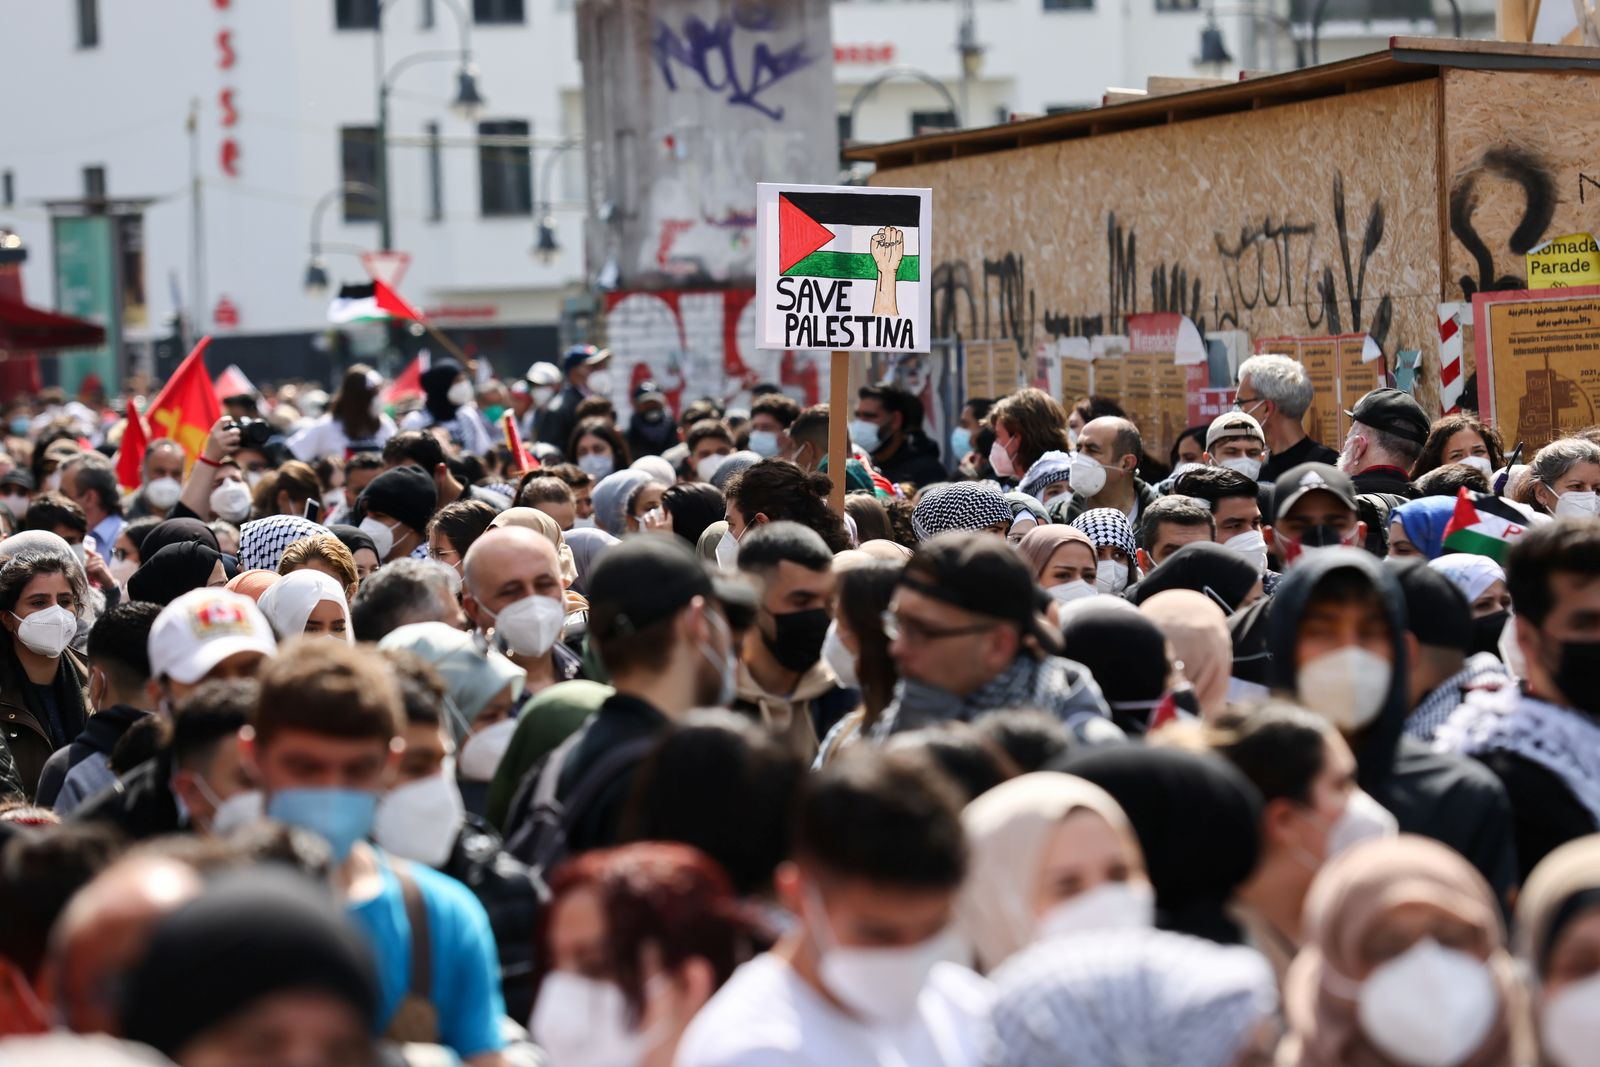 Palestinians demonstrate in Germany on the anniversary of Nakba